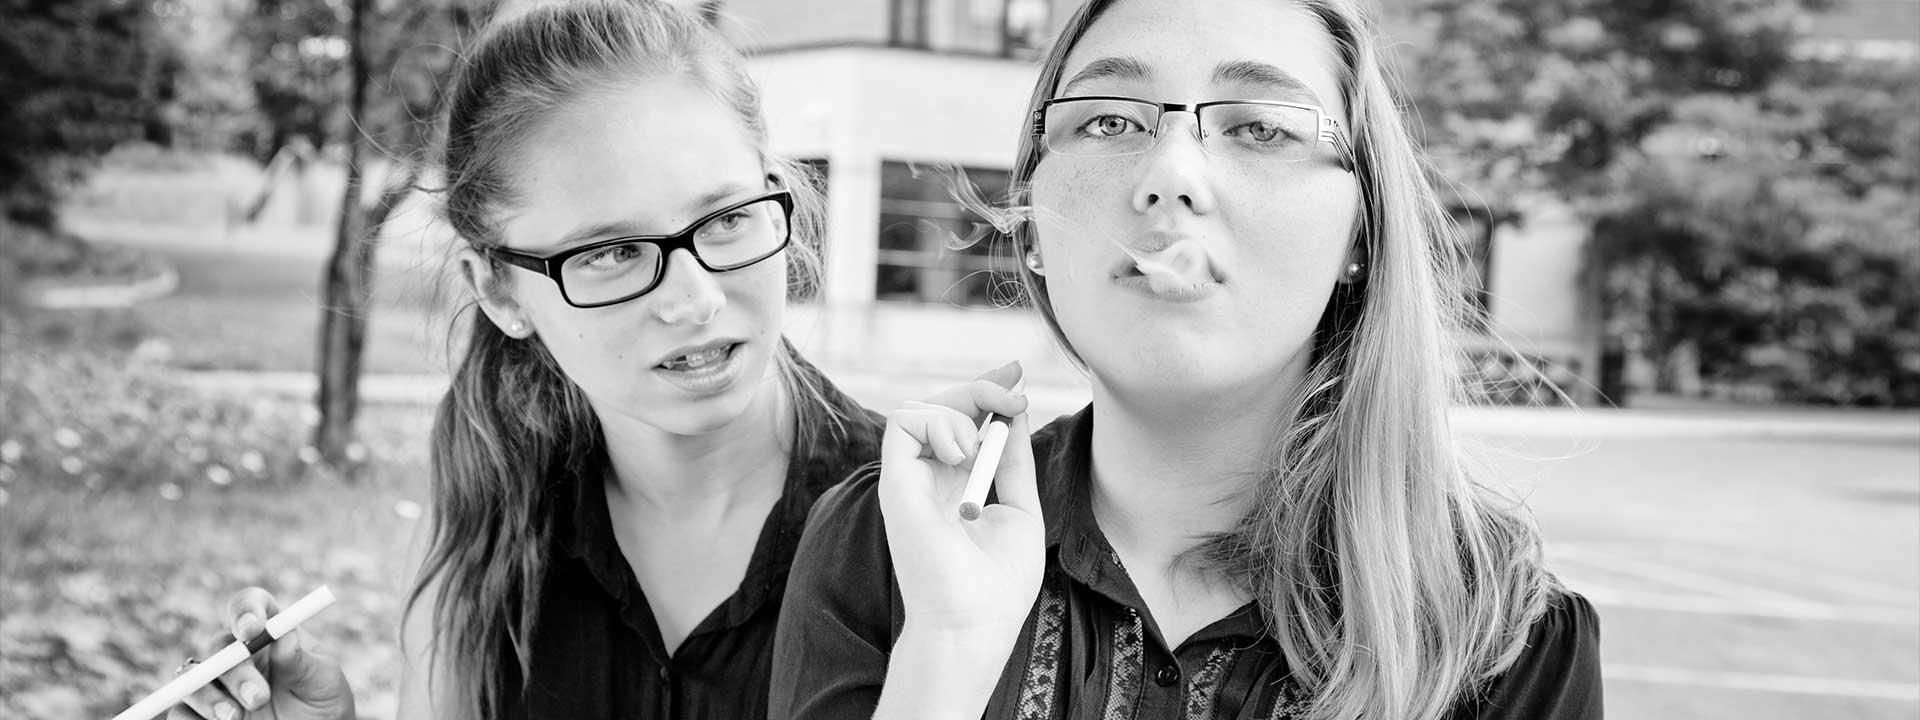 Two young middle school girls trying vape